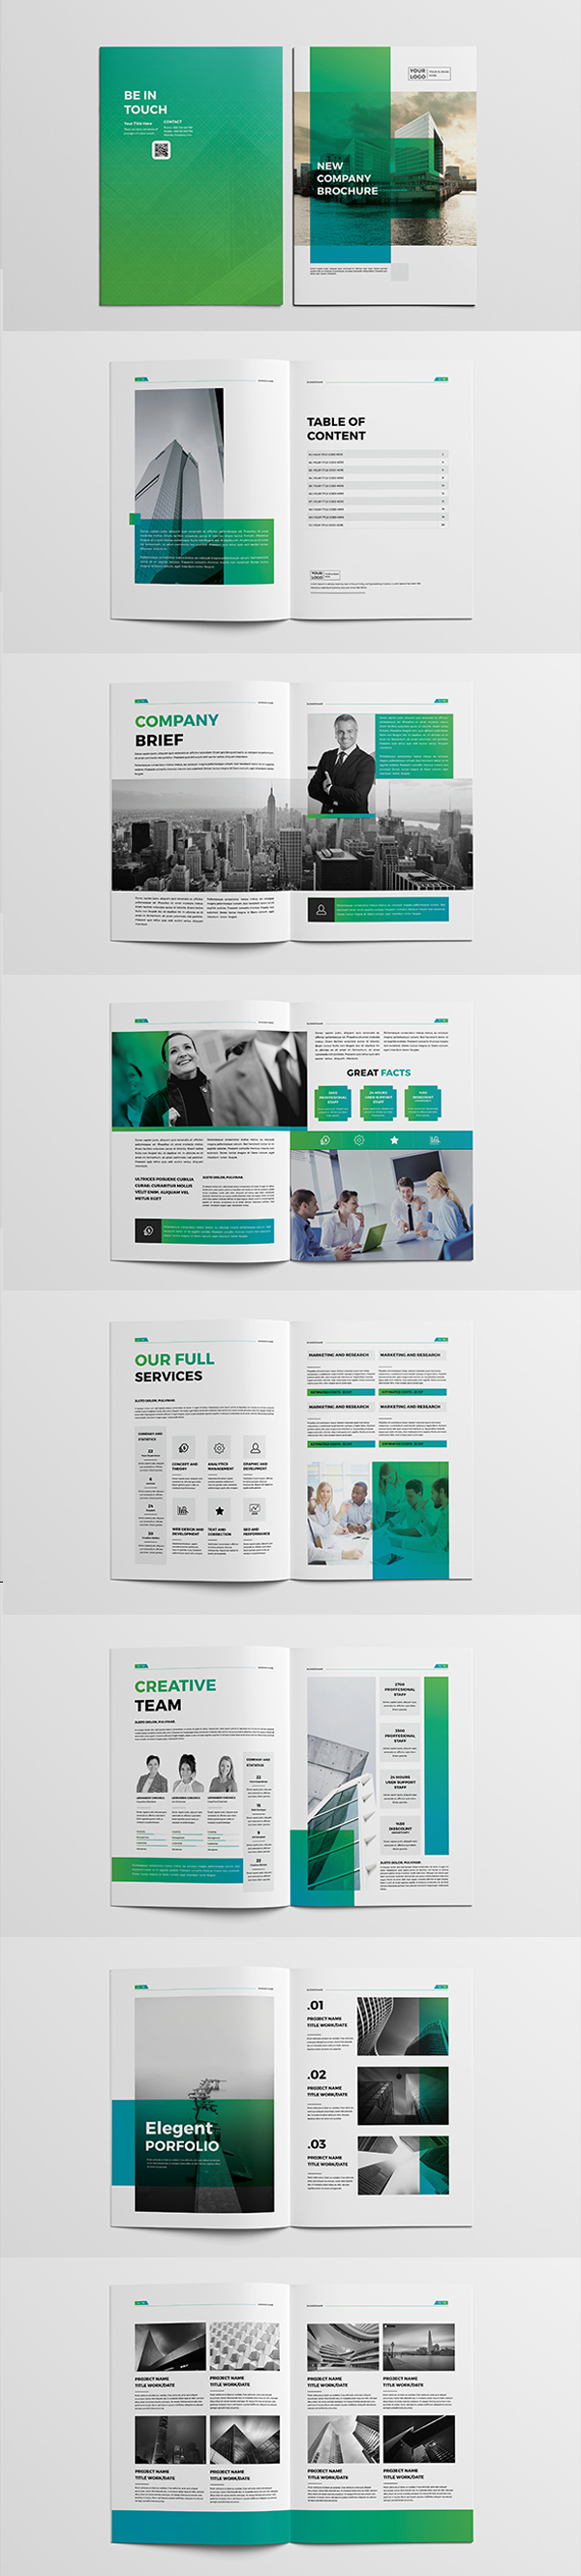 Professional Business Company Brochure